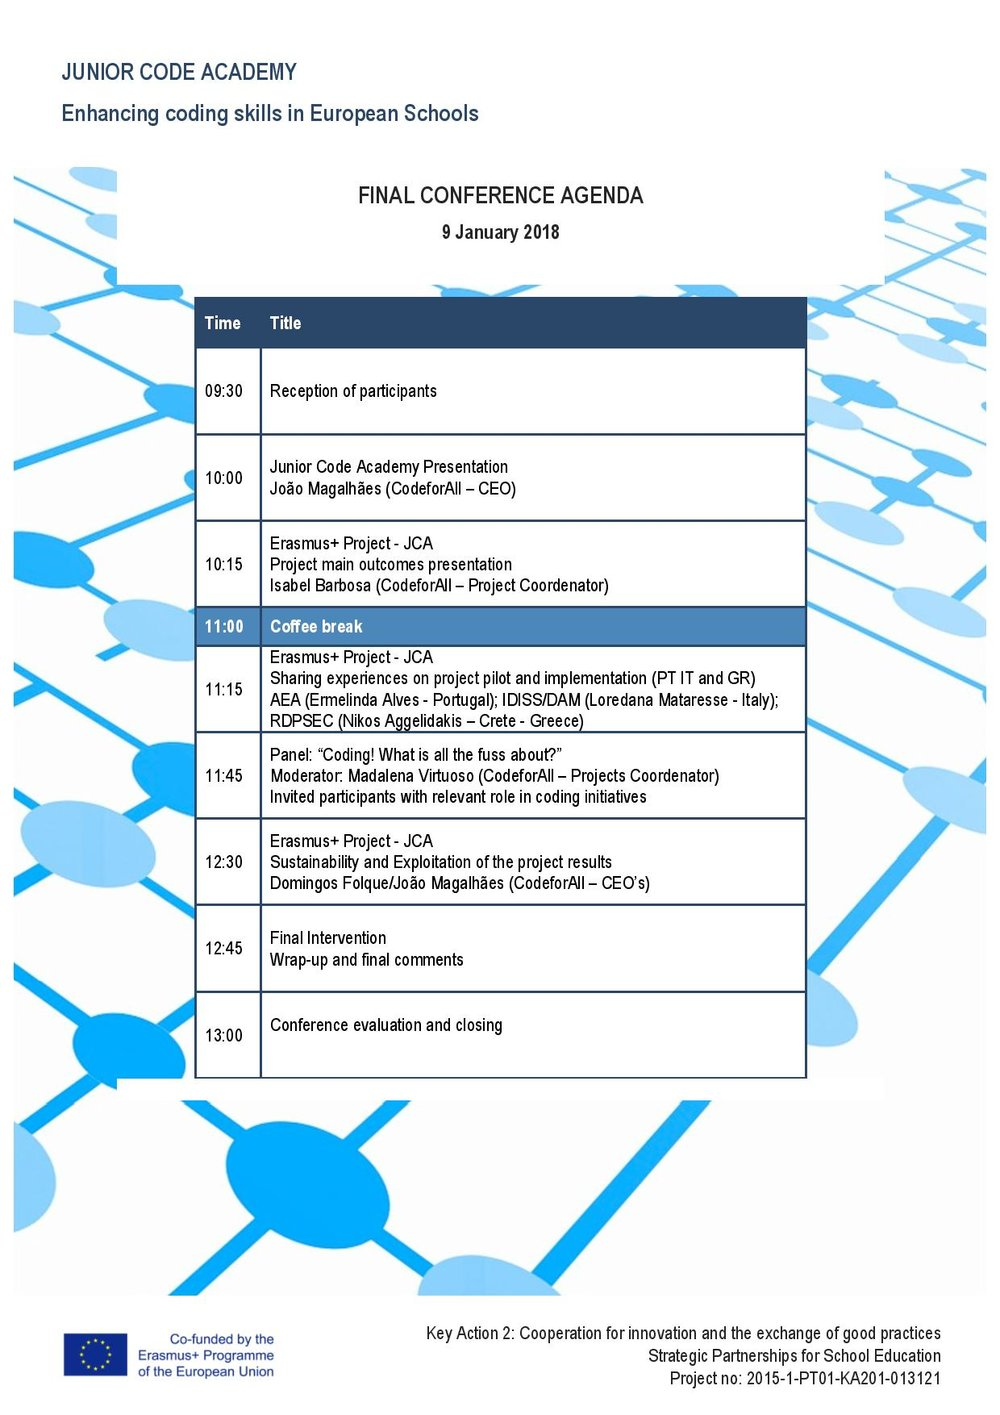 Agenda - JCA Final Conference-page-001.jpg